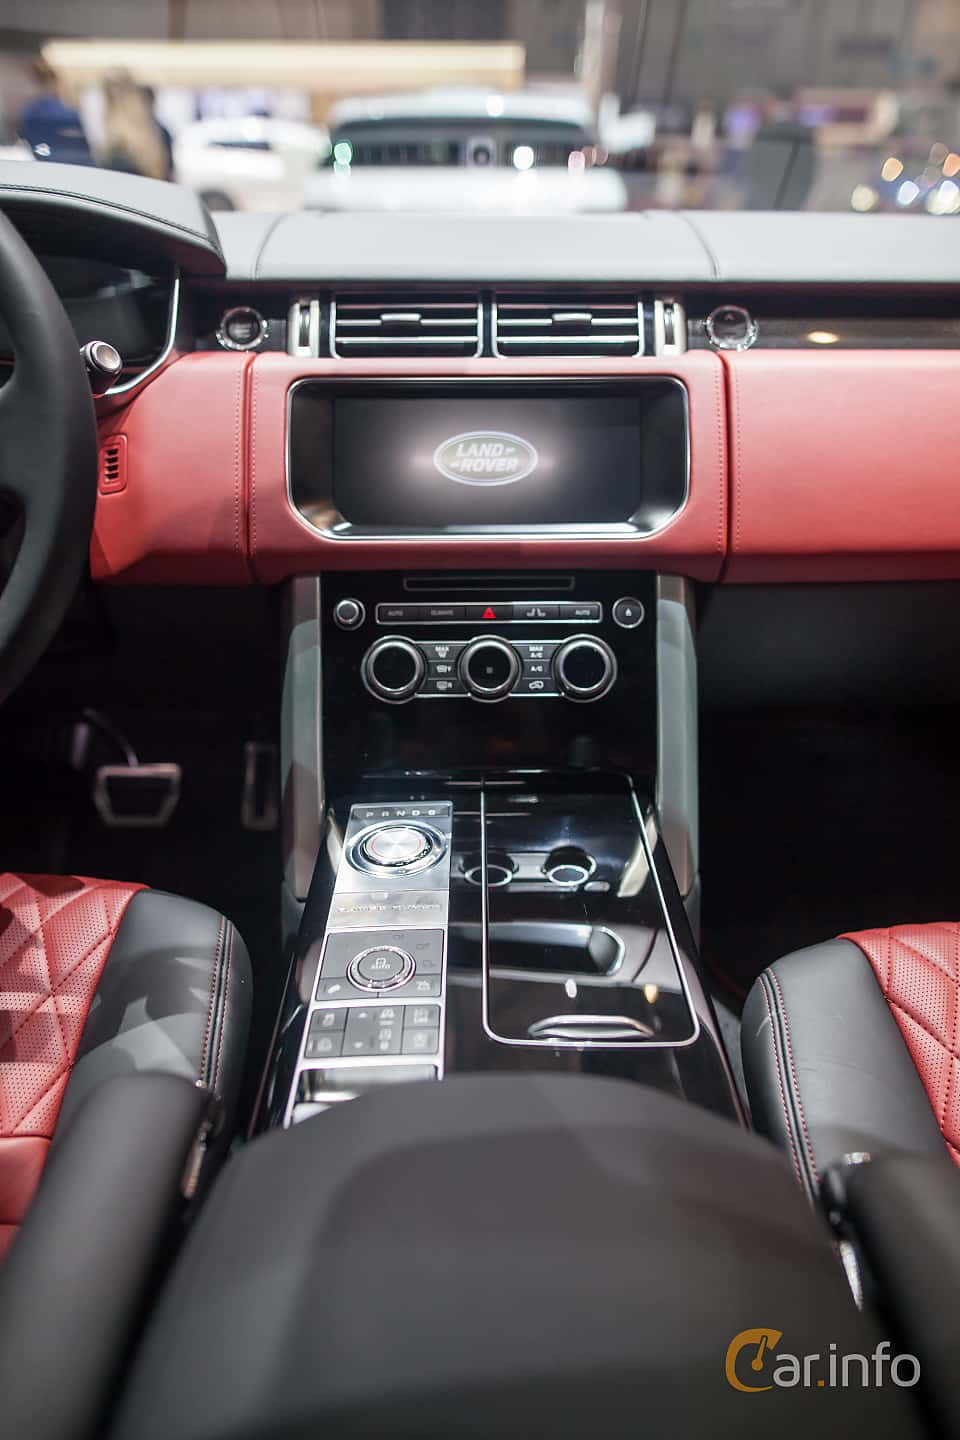 Interior of Land Rover Range Rover 5.0 V8 4WD Automatic, 550ps, 2017 at Geneva Motor Show 2017